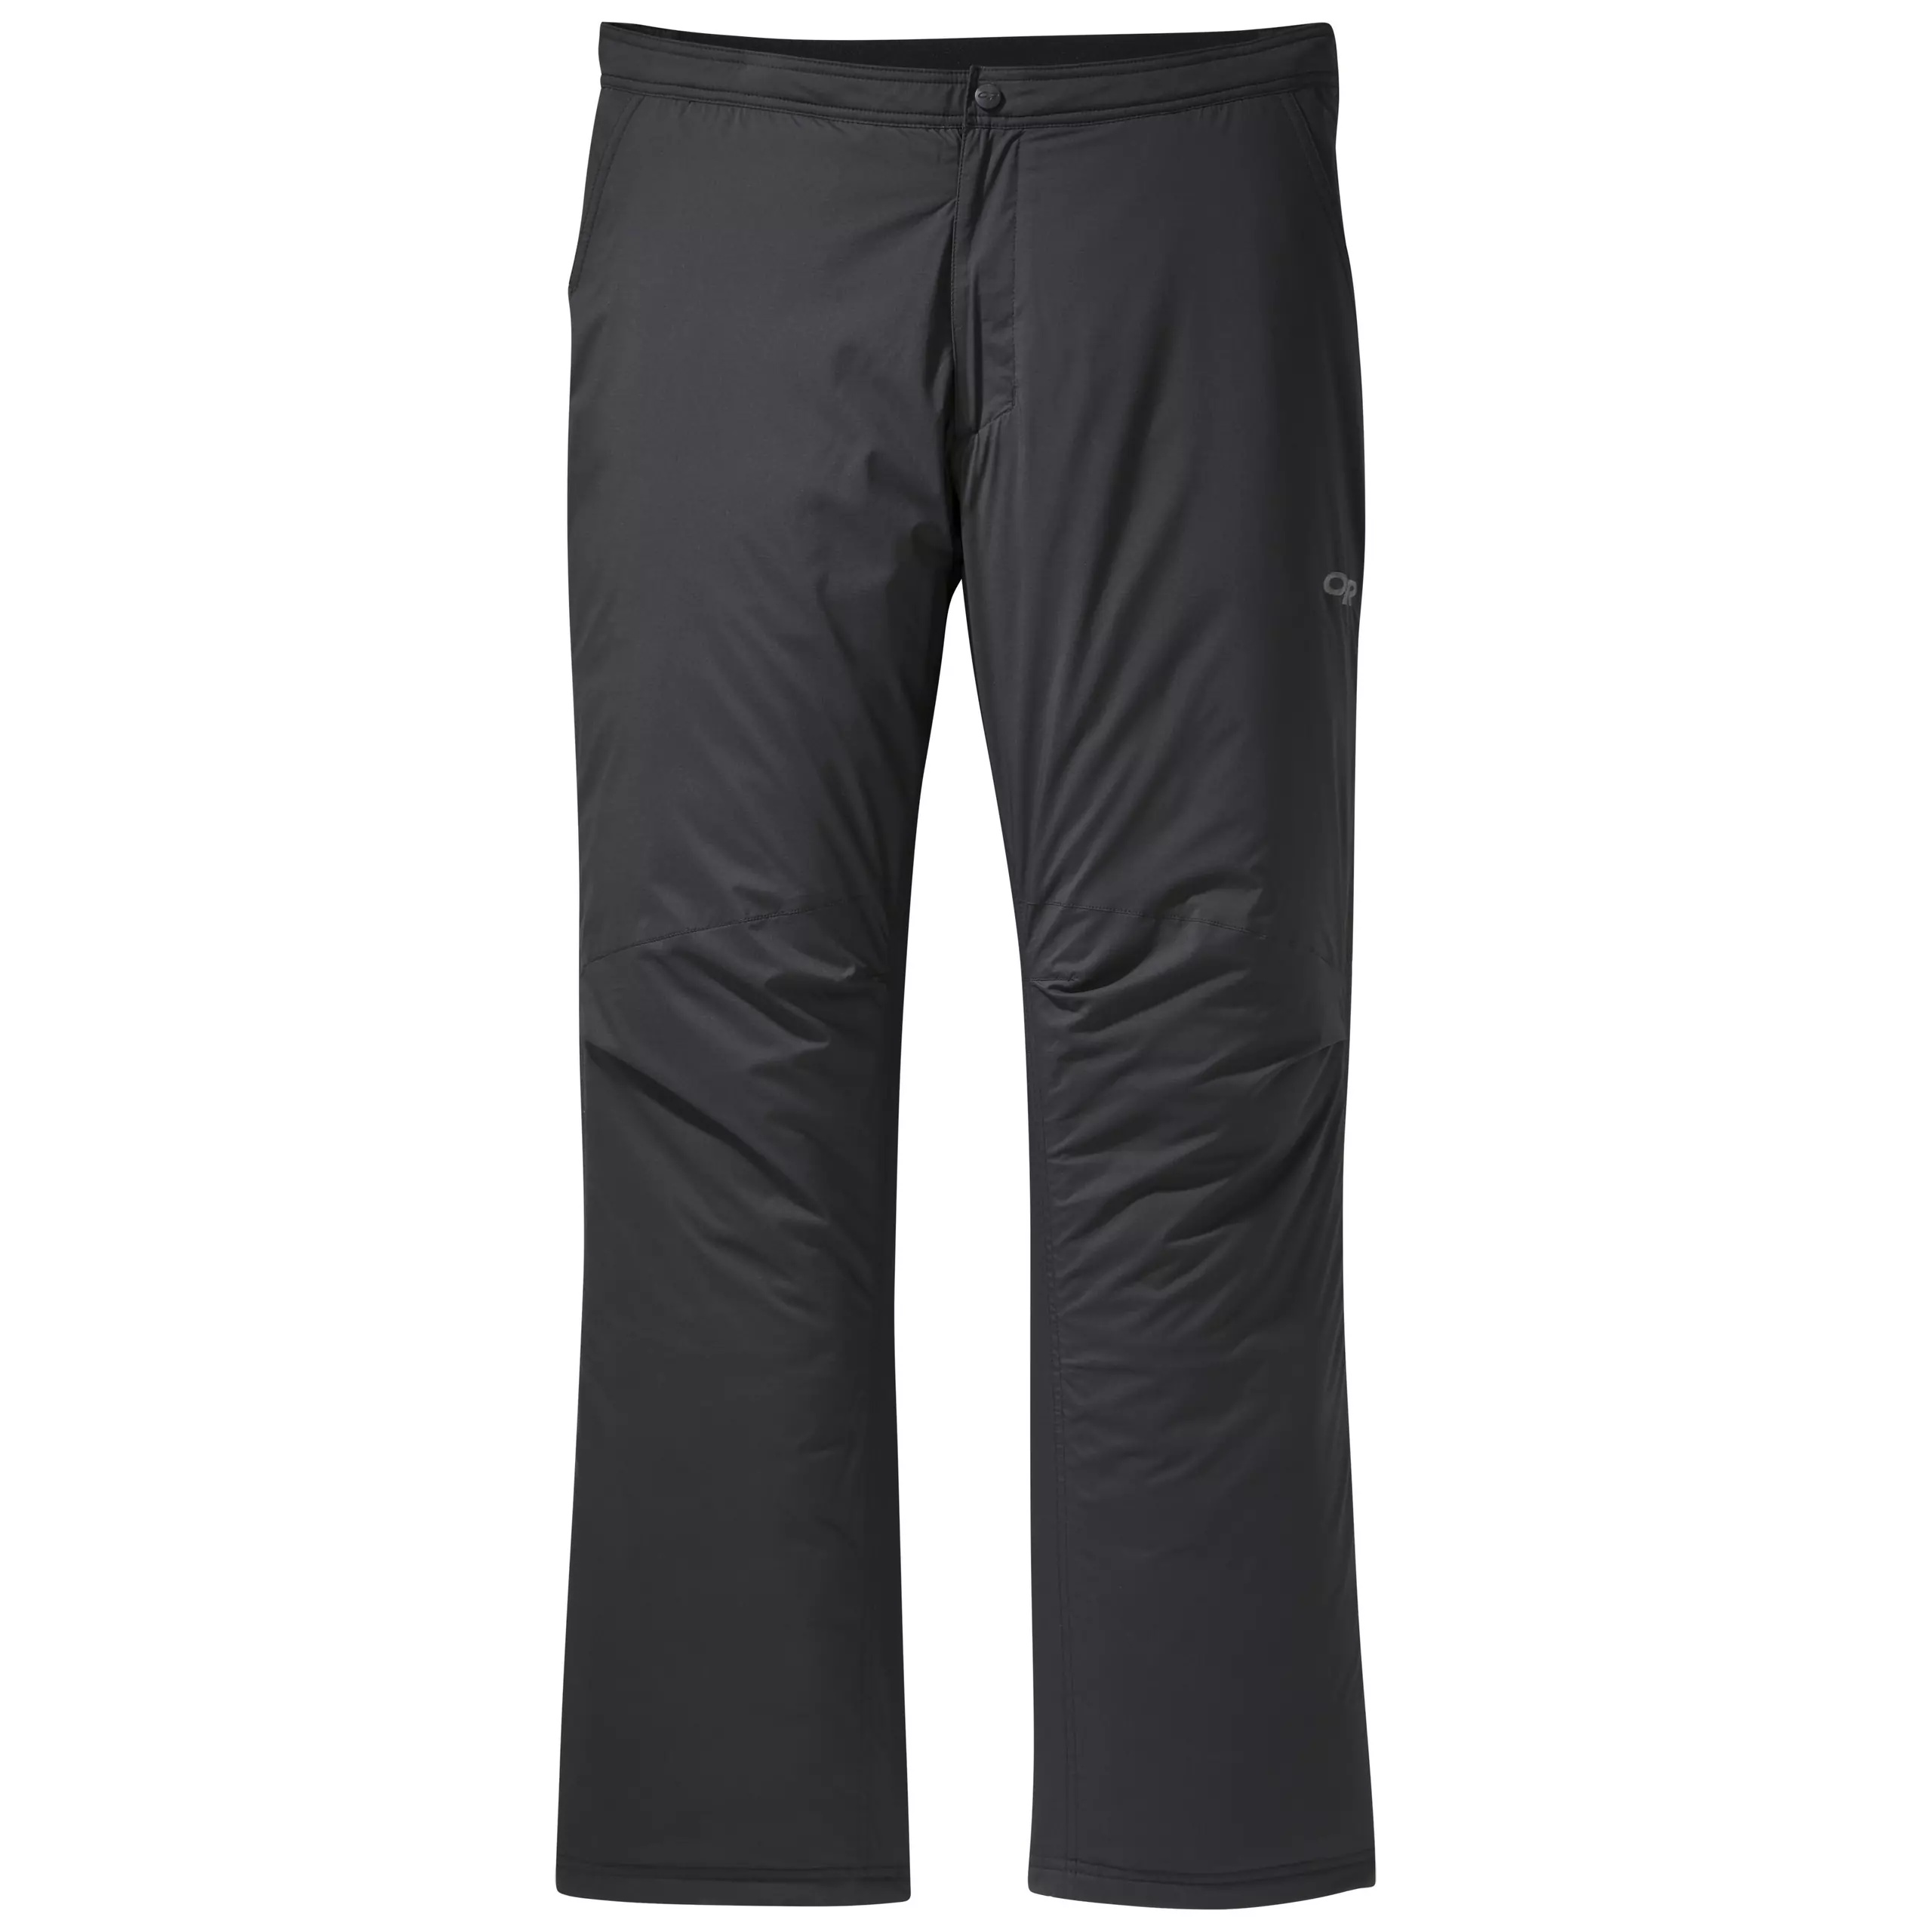 Refuge Pants - Men's